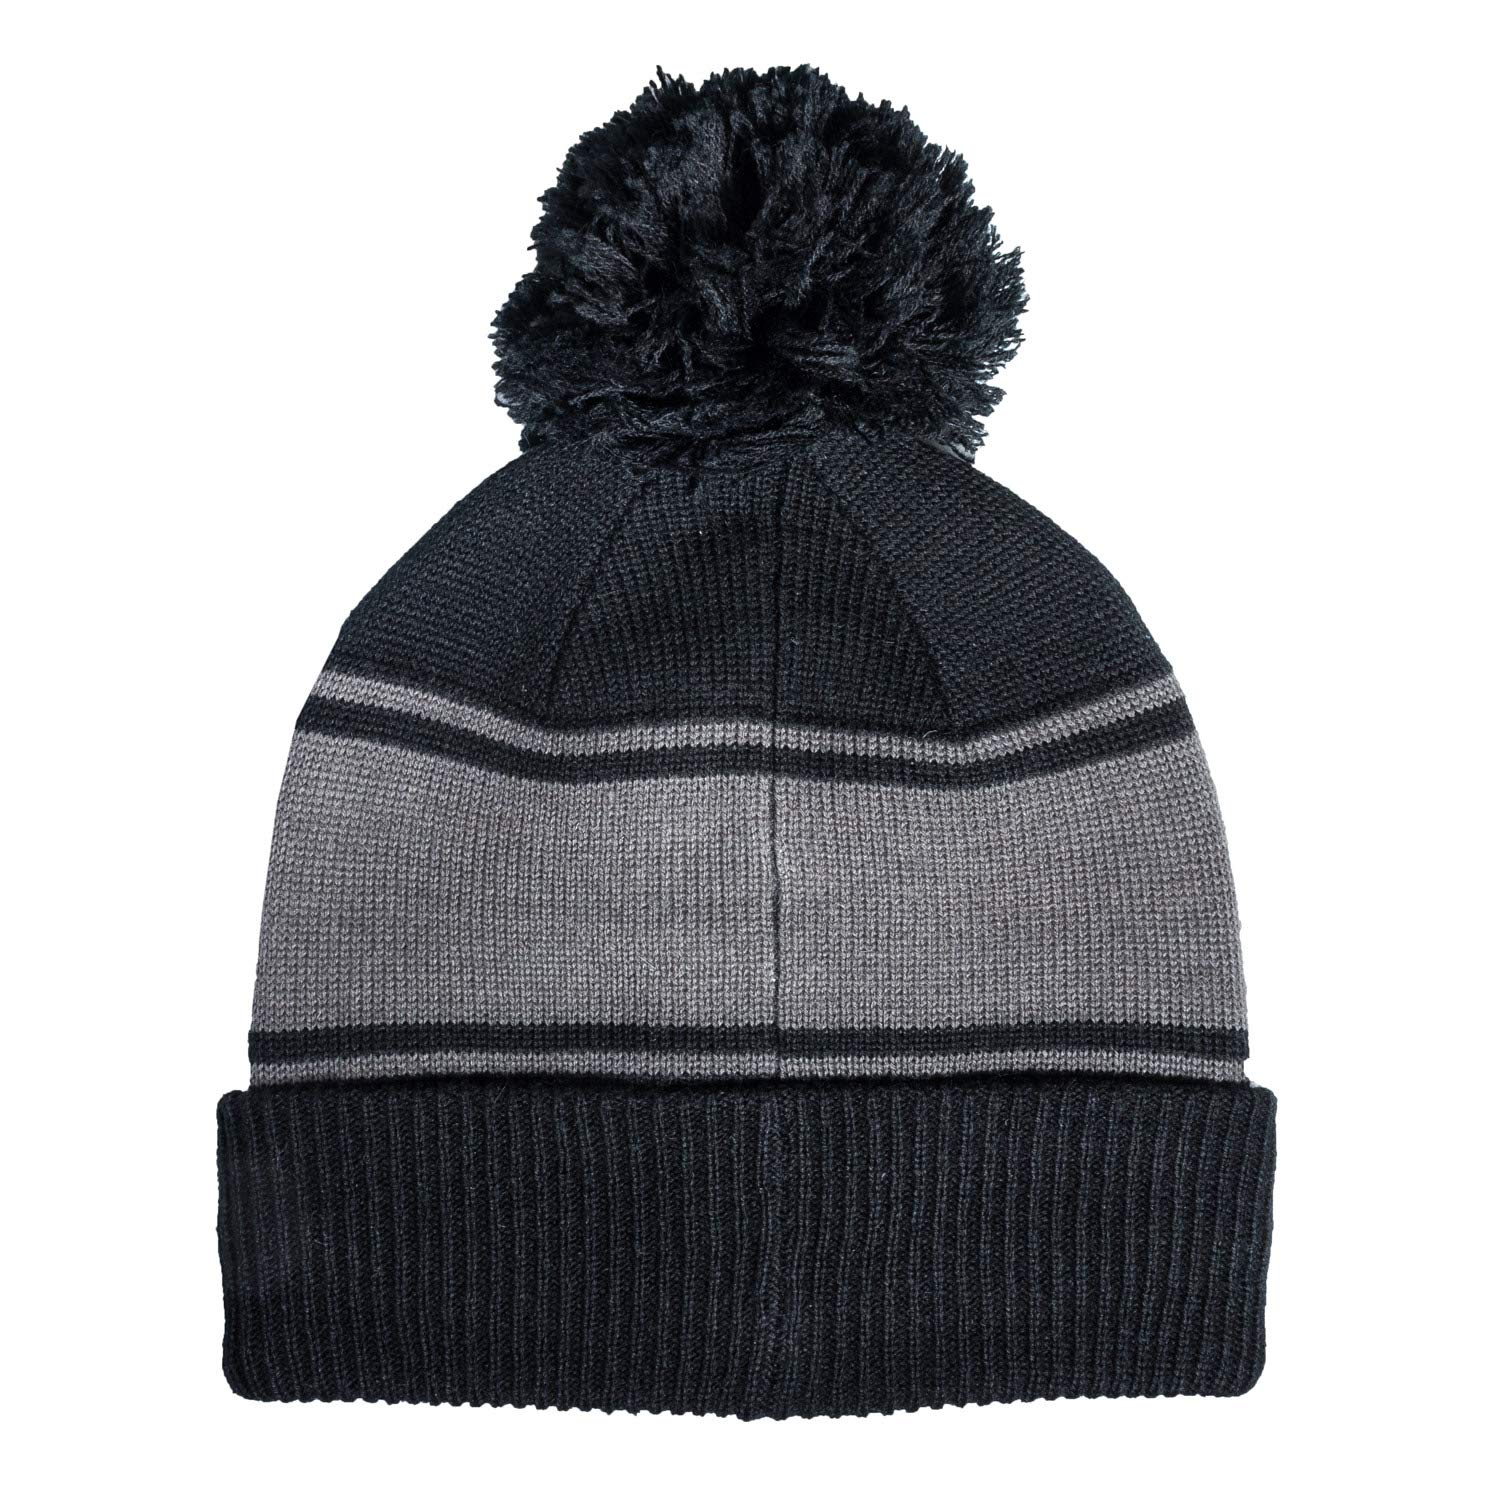 Emporio Armani Ea7 Women s Emporio Ea7 Mount Beanie M Black at Amazon Men s  Clothing store  e6556885a27